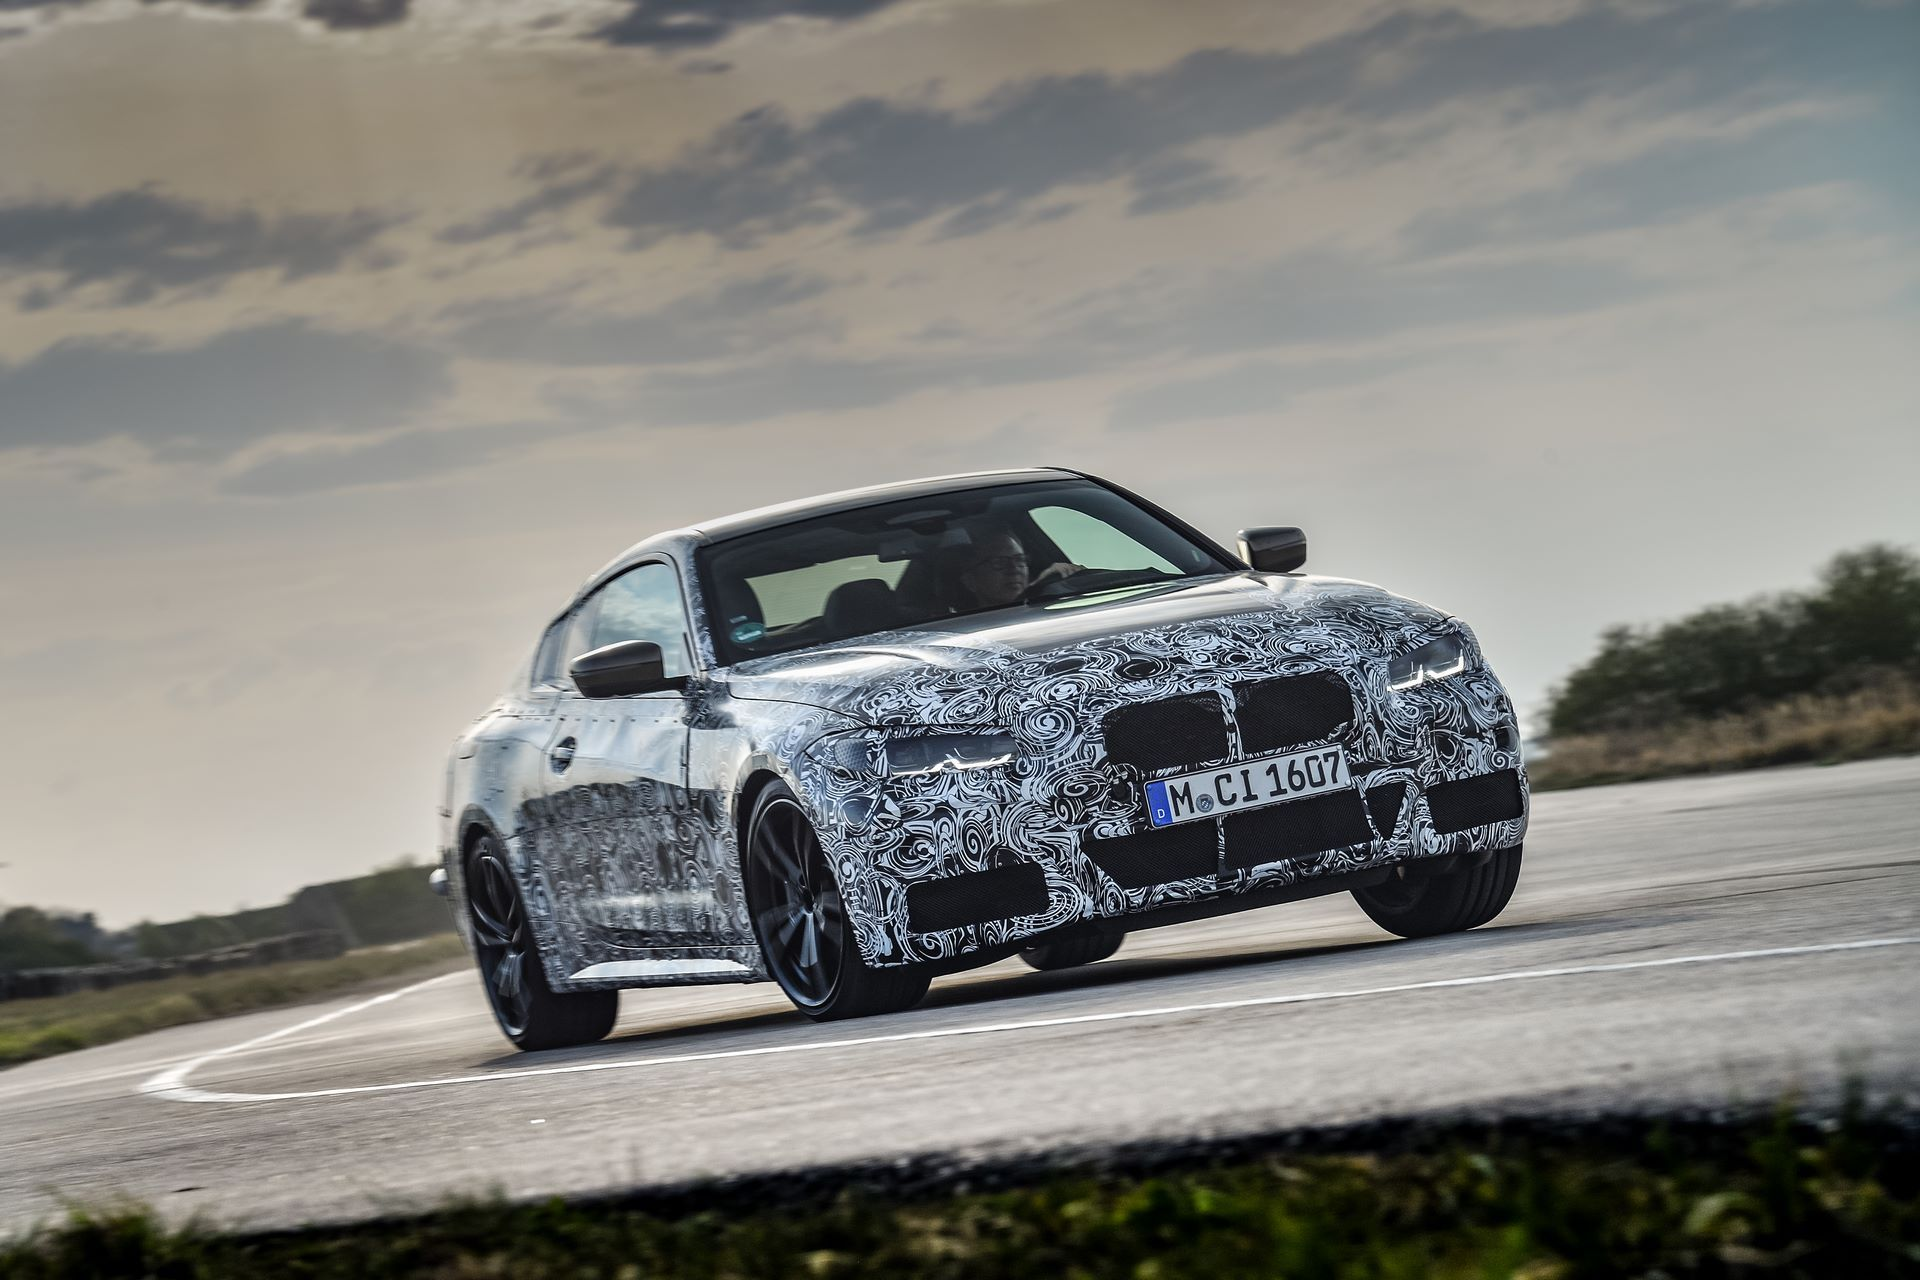 BMW-4-Series-M440i-camouflaged-6